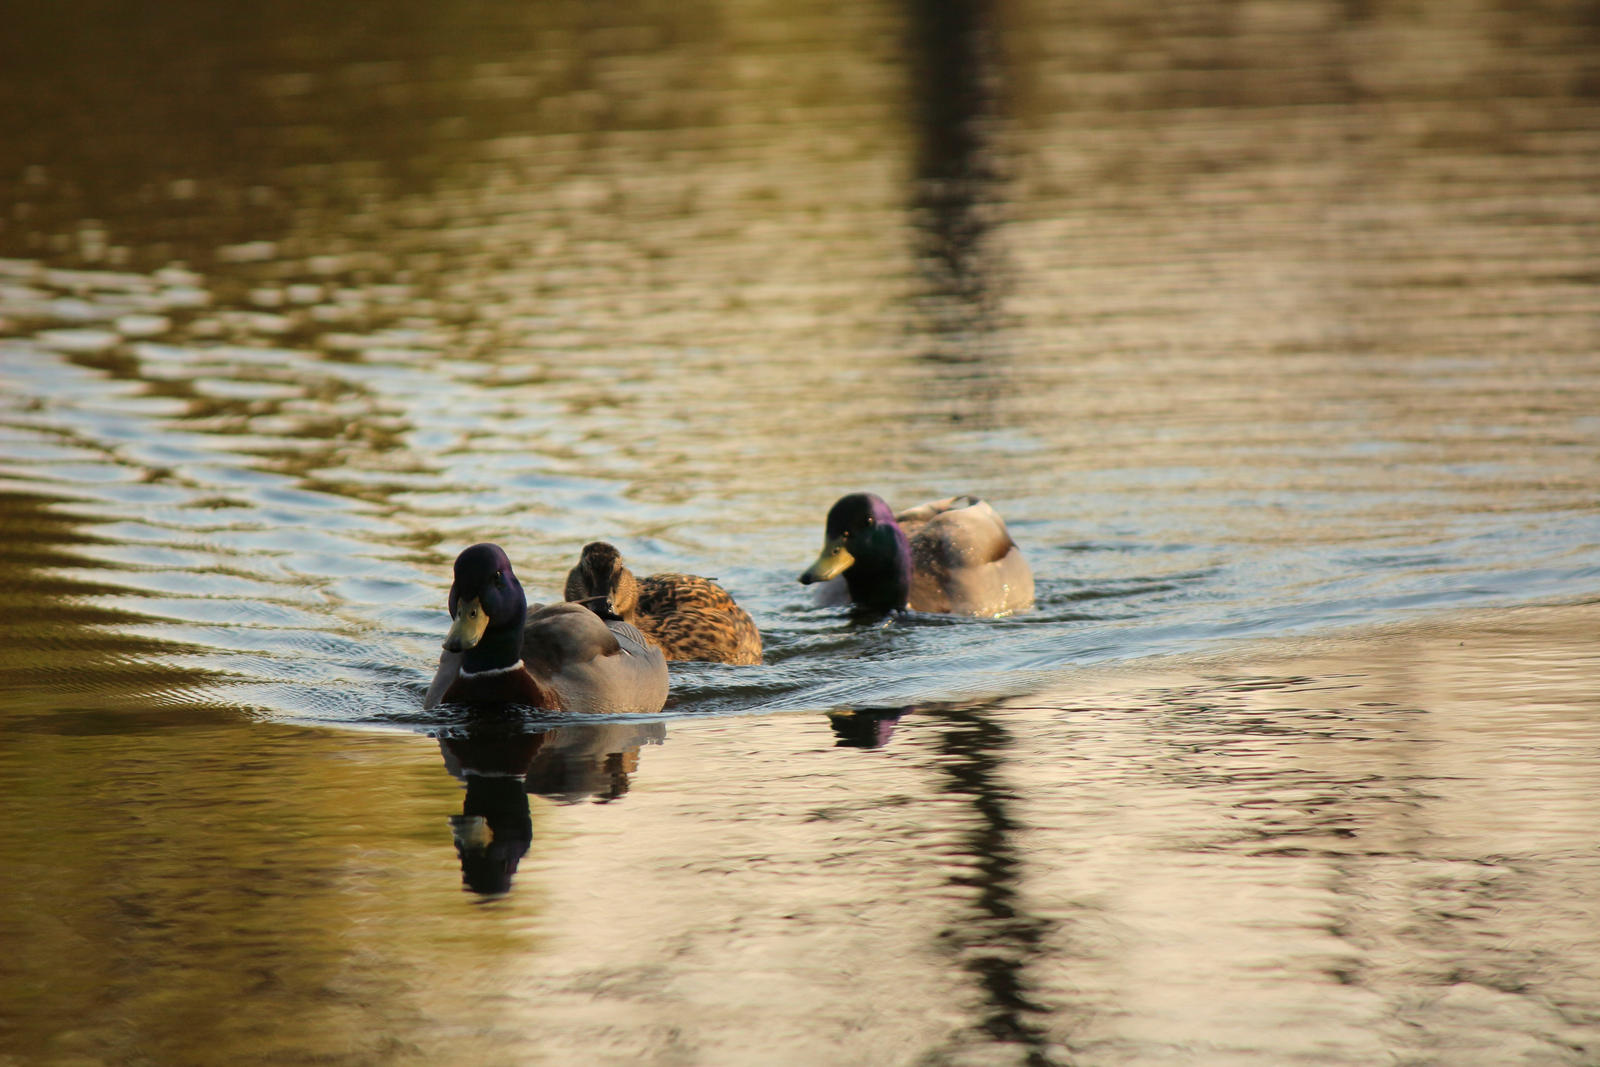 Ducks on the way by LoveForDetails